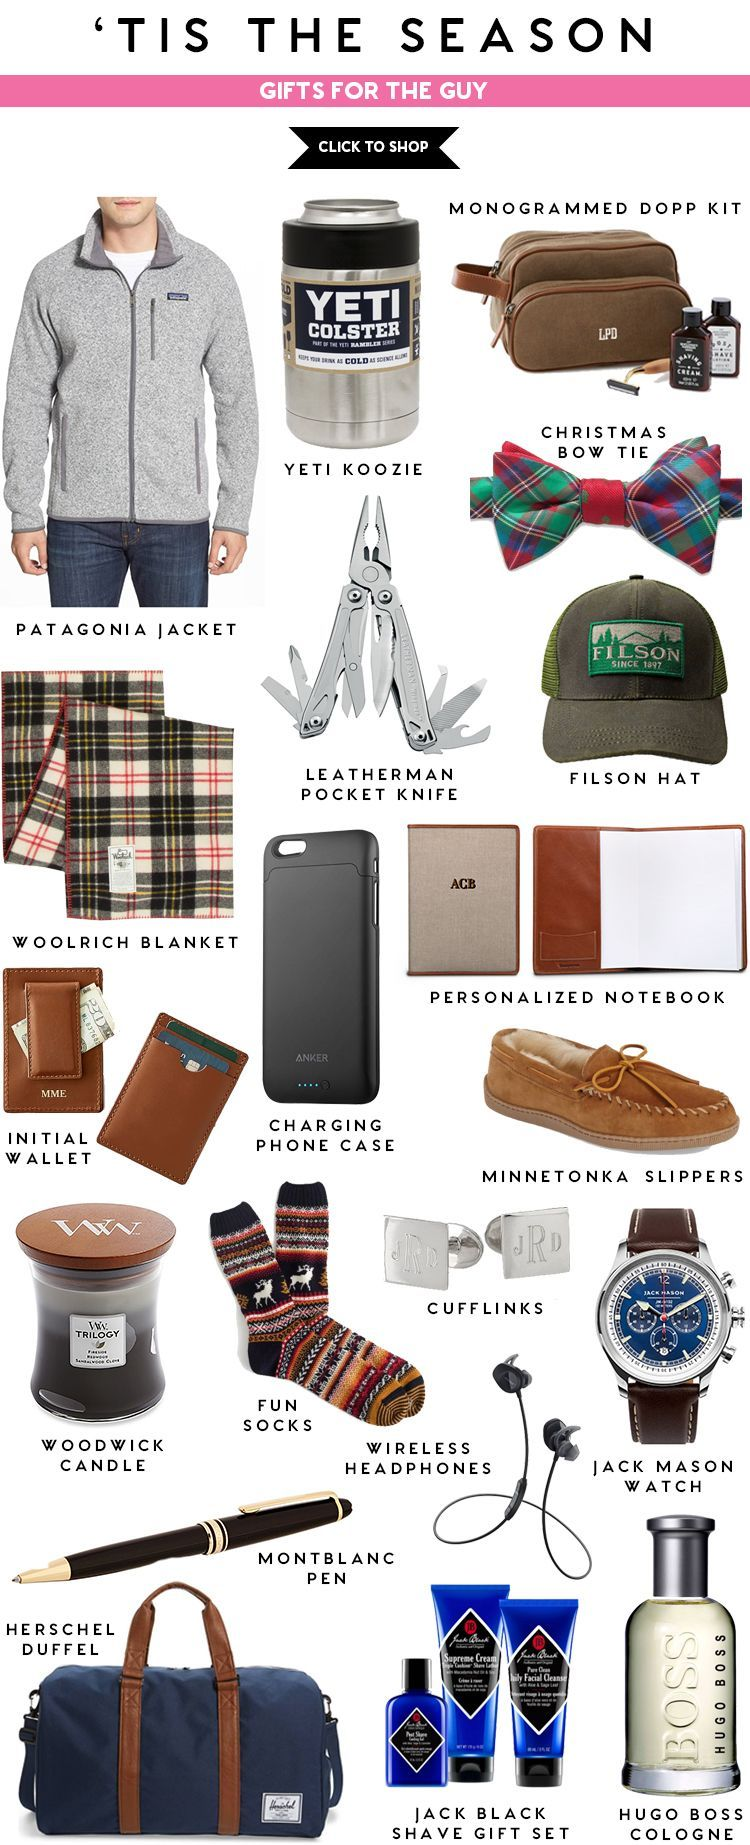 Tis The Season Gifts For The Guy Gifts Guy Season Tis Guy Friend Gifts Christmas Gifts For Men Boyfriend Gifts